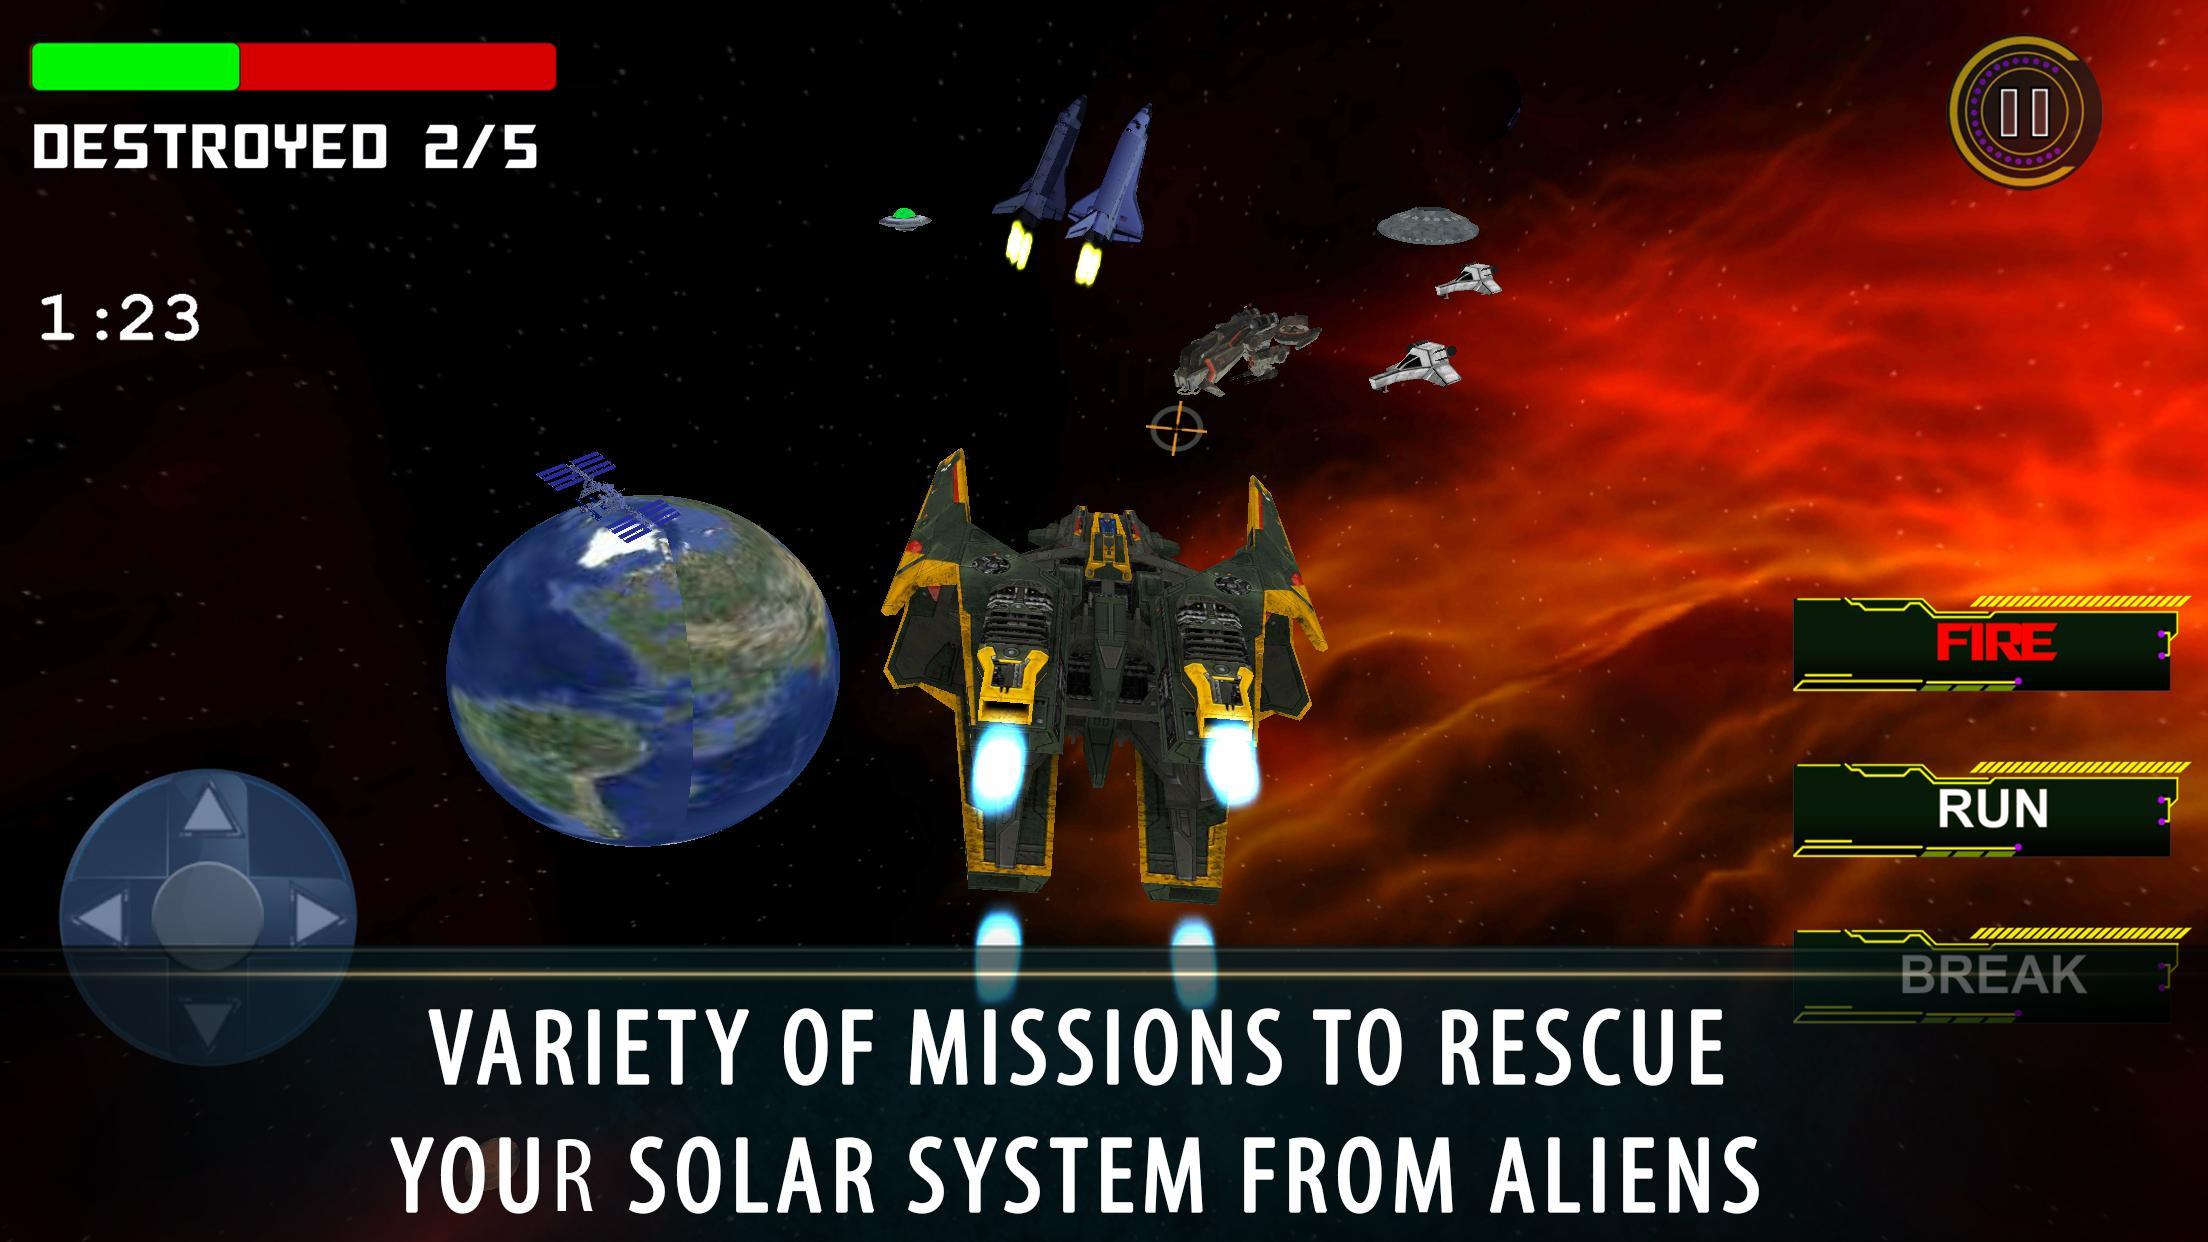 Flying Saucer Universe Defence Battle Simulator for Android - APK